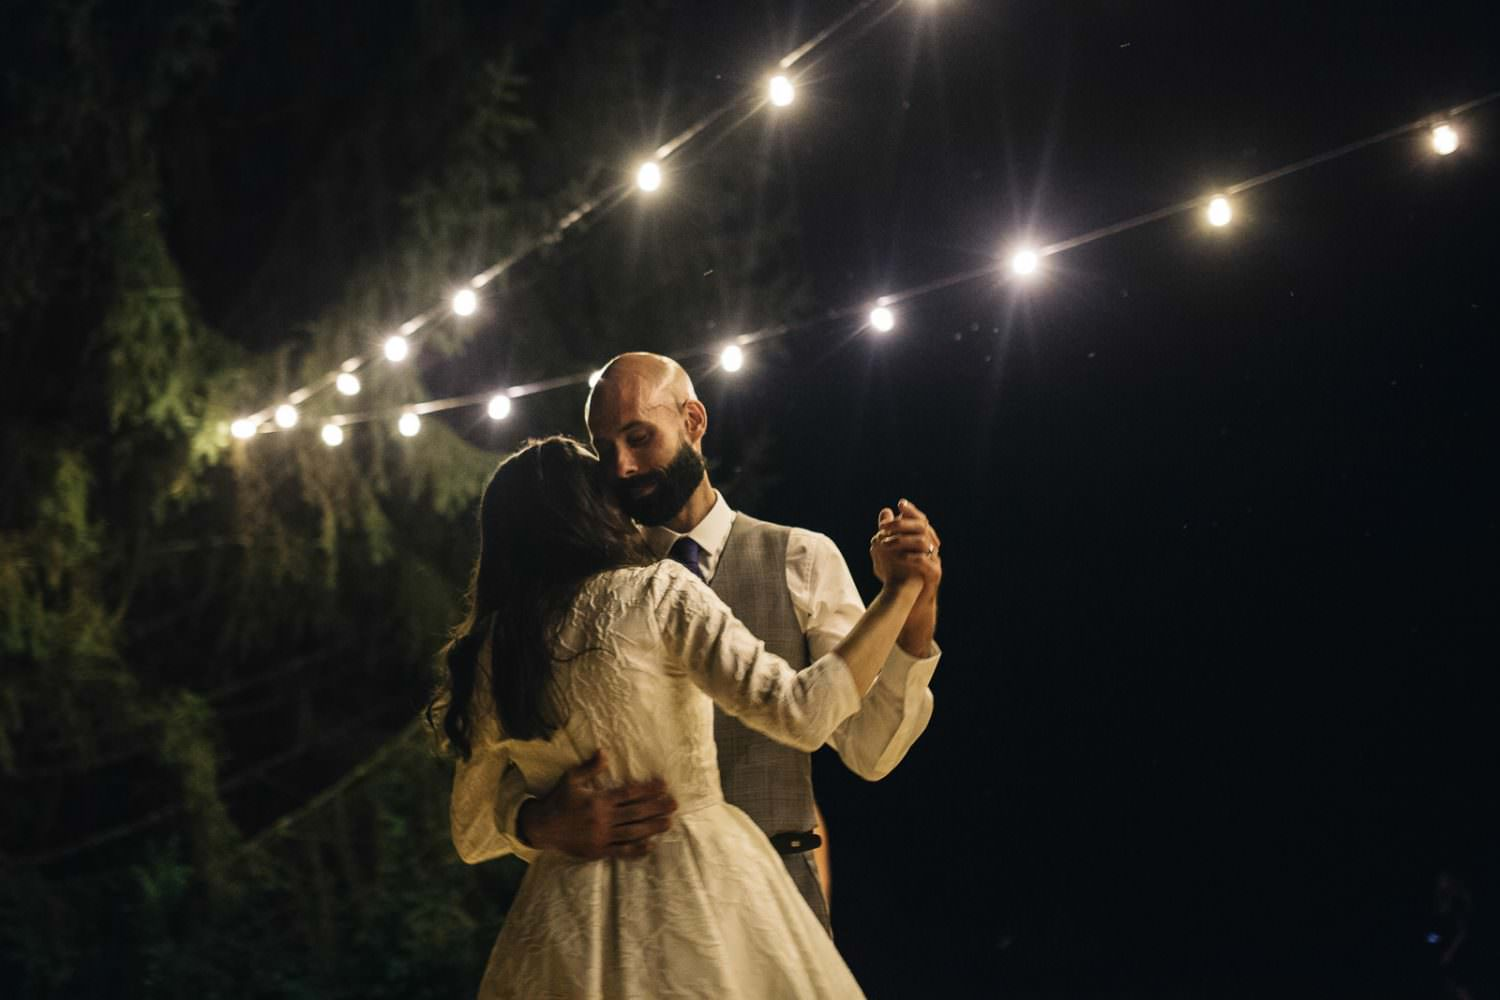 Bride and Groom dance under moonlight and light bulbs on their wedding day